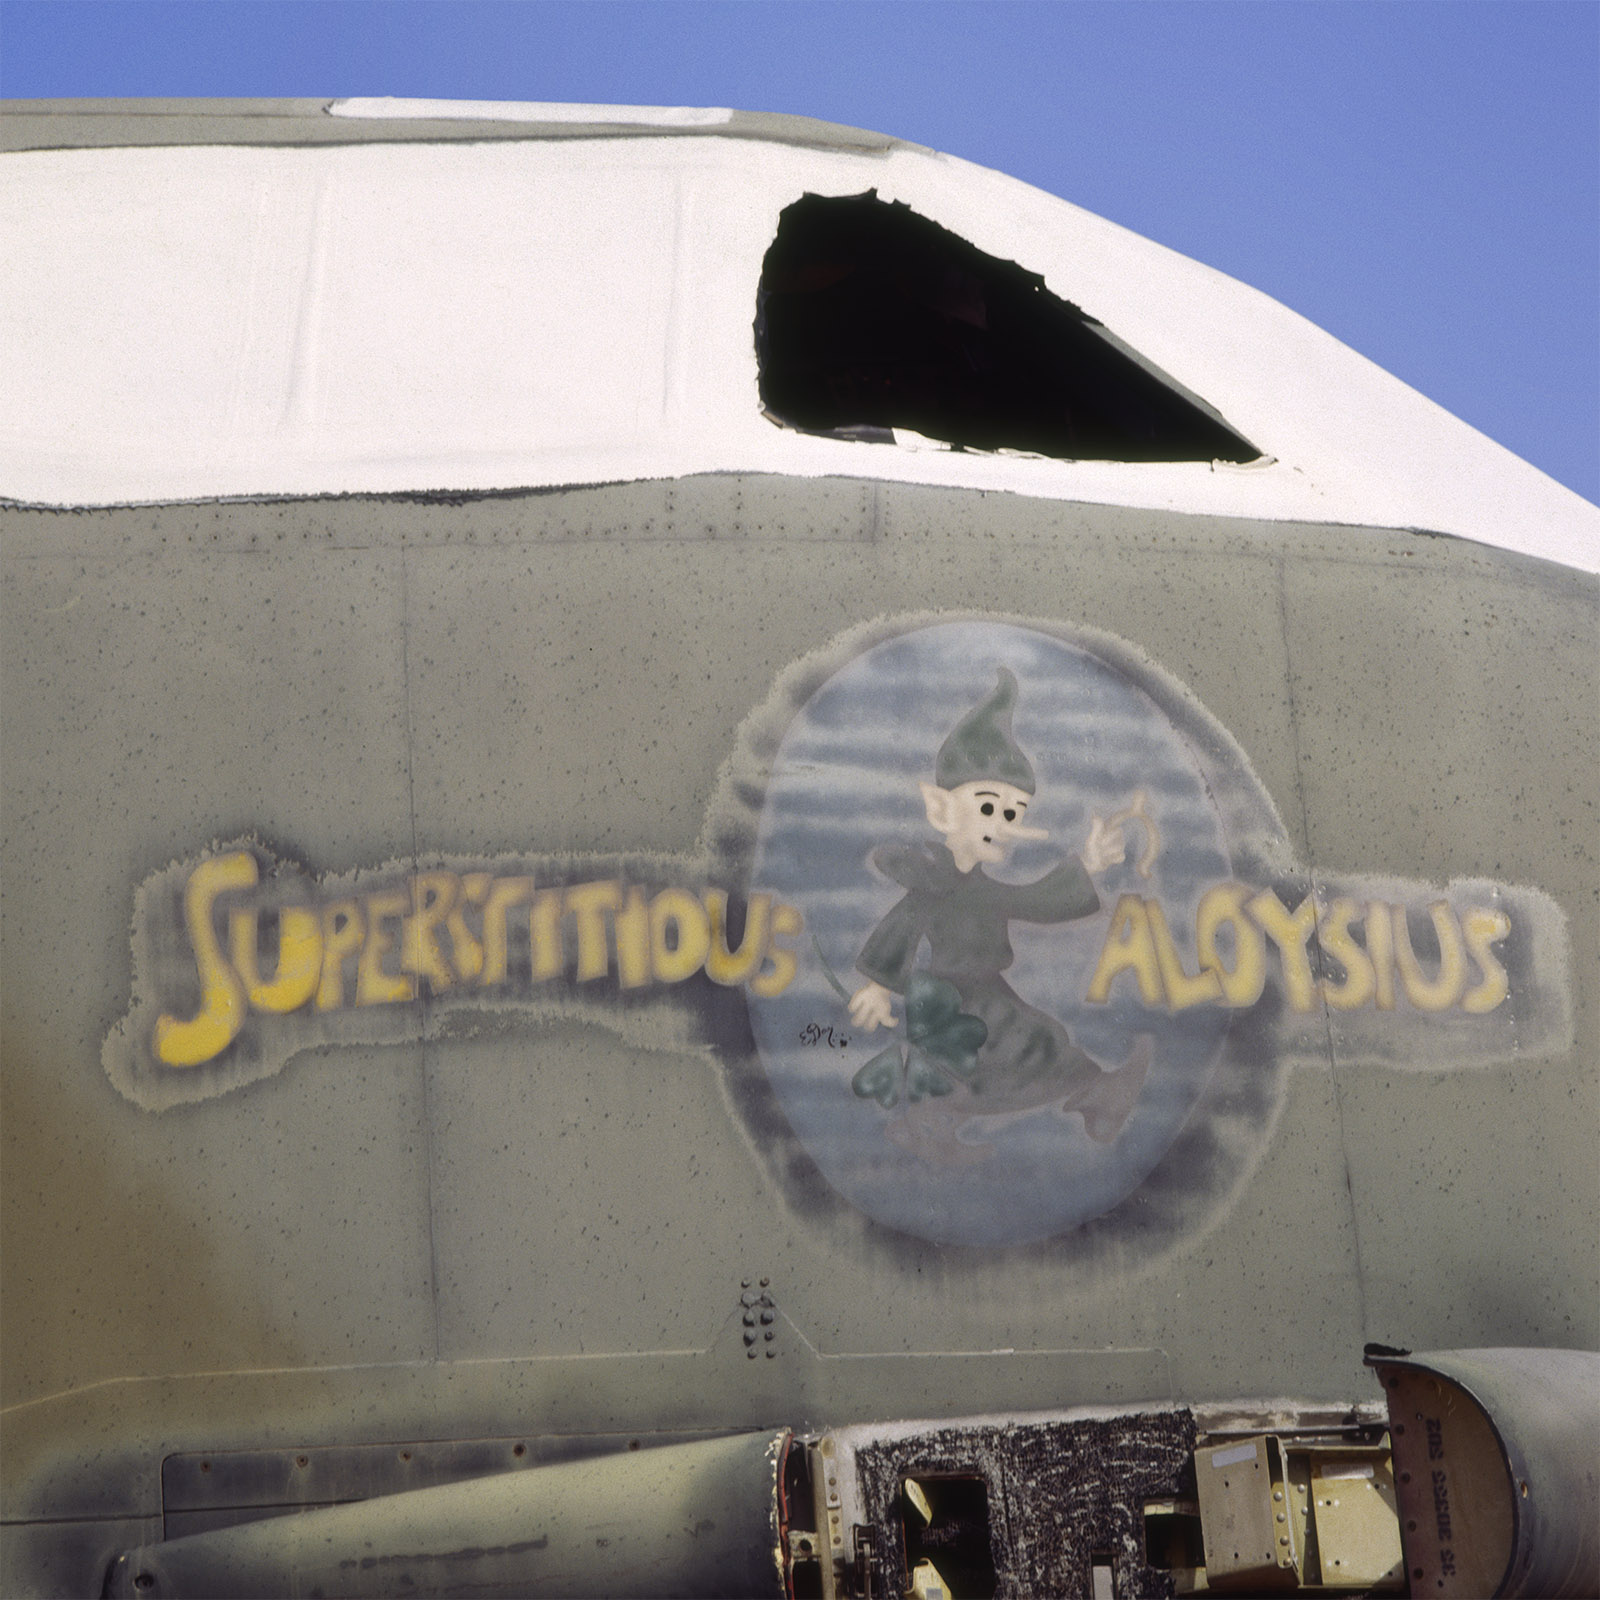 superstitious aloysius nose art -rev.jpg